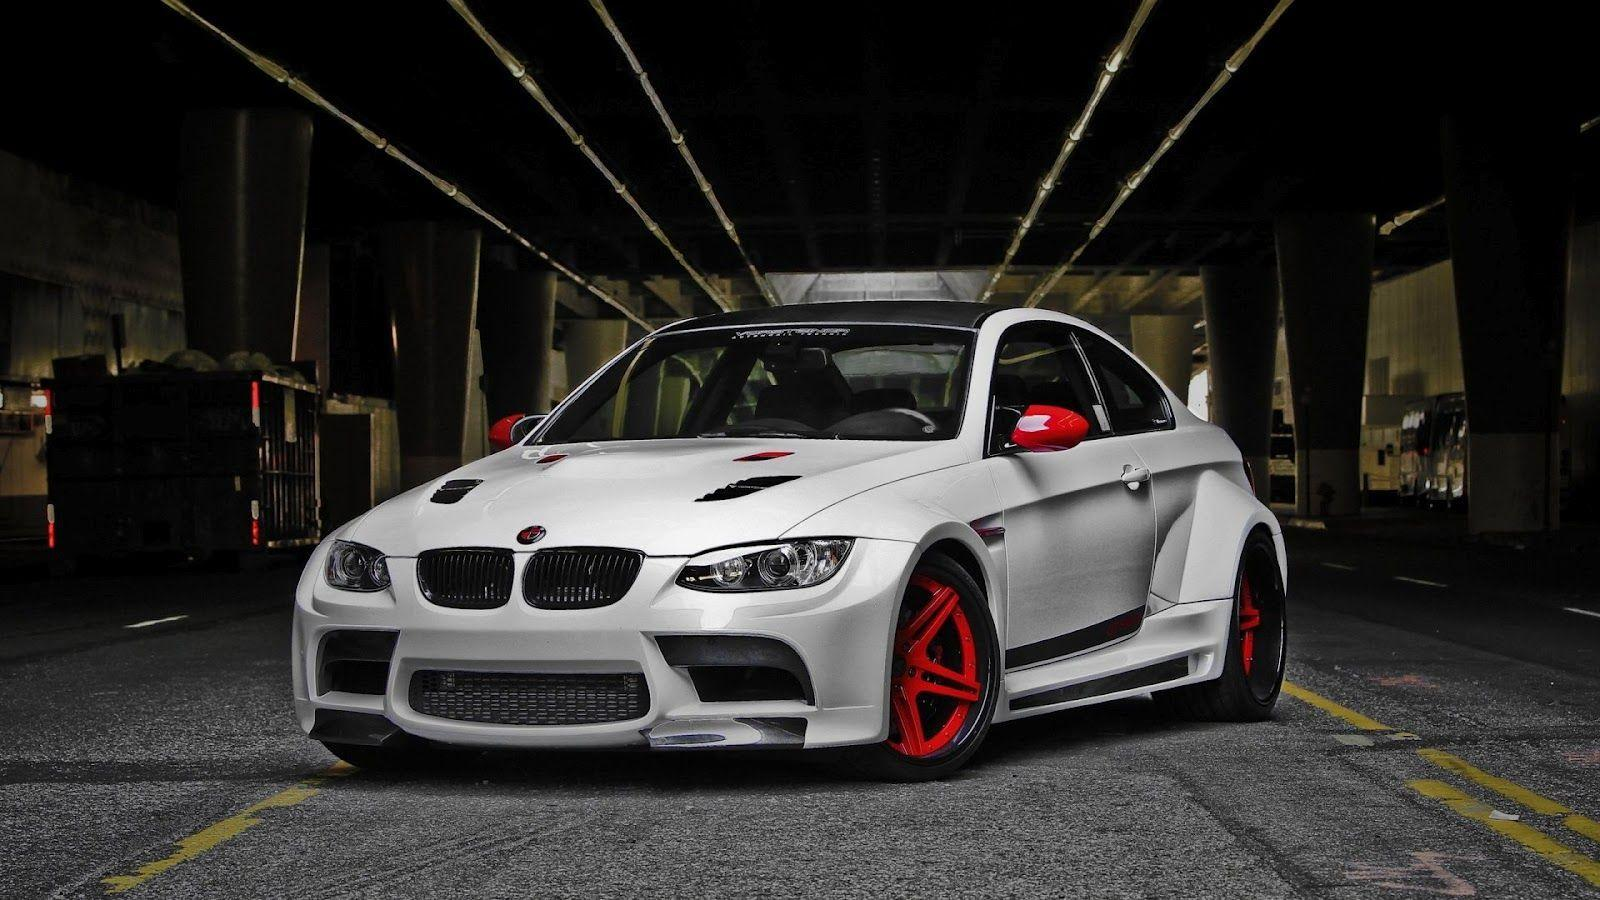 BMW M3 WALLPAPER 28 136045 Image HD Wallpapers